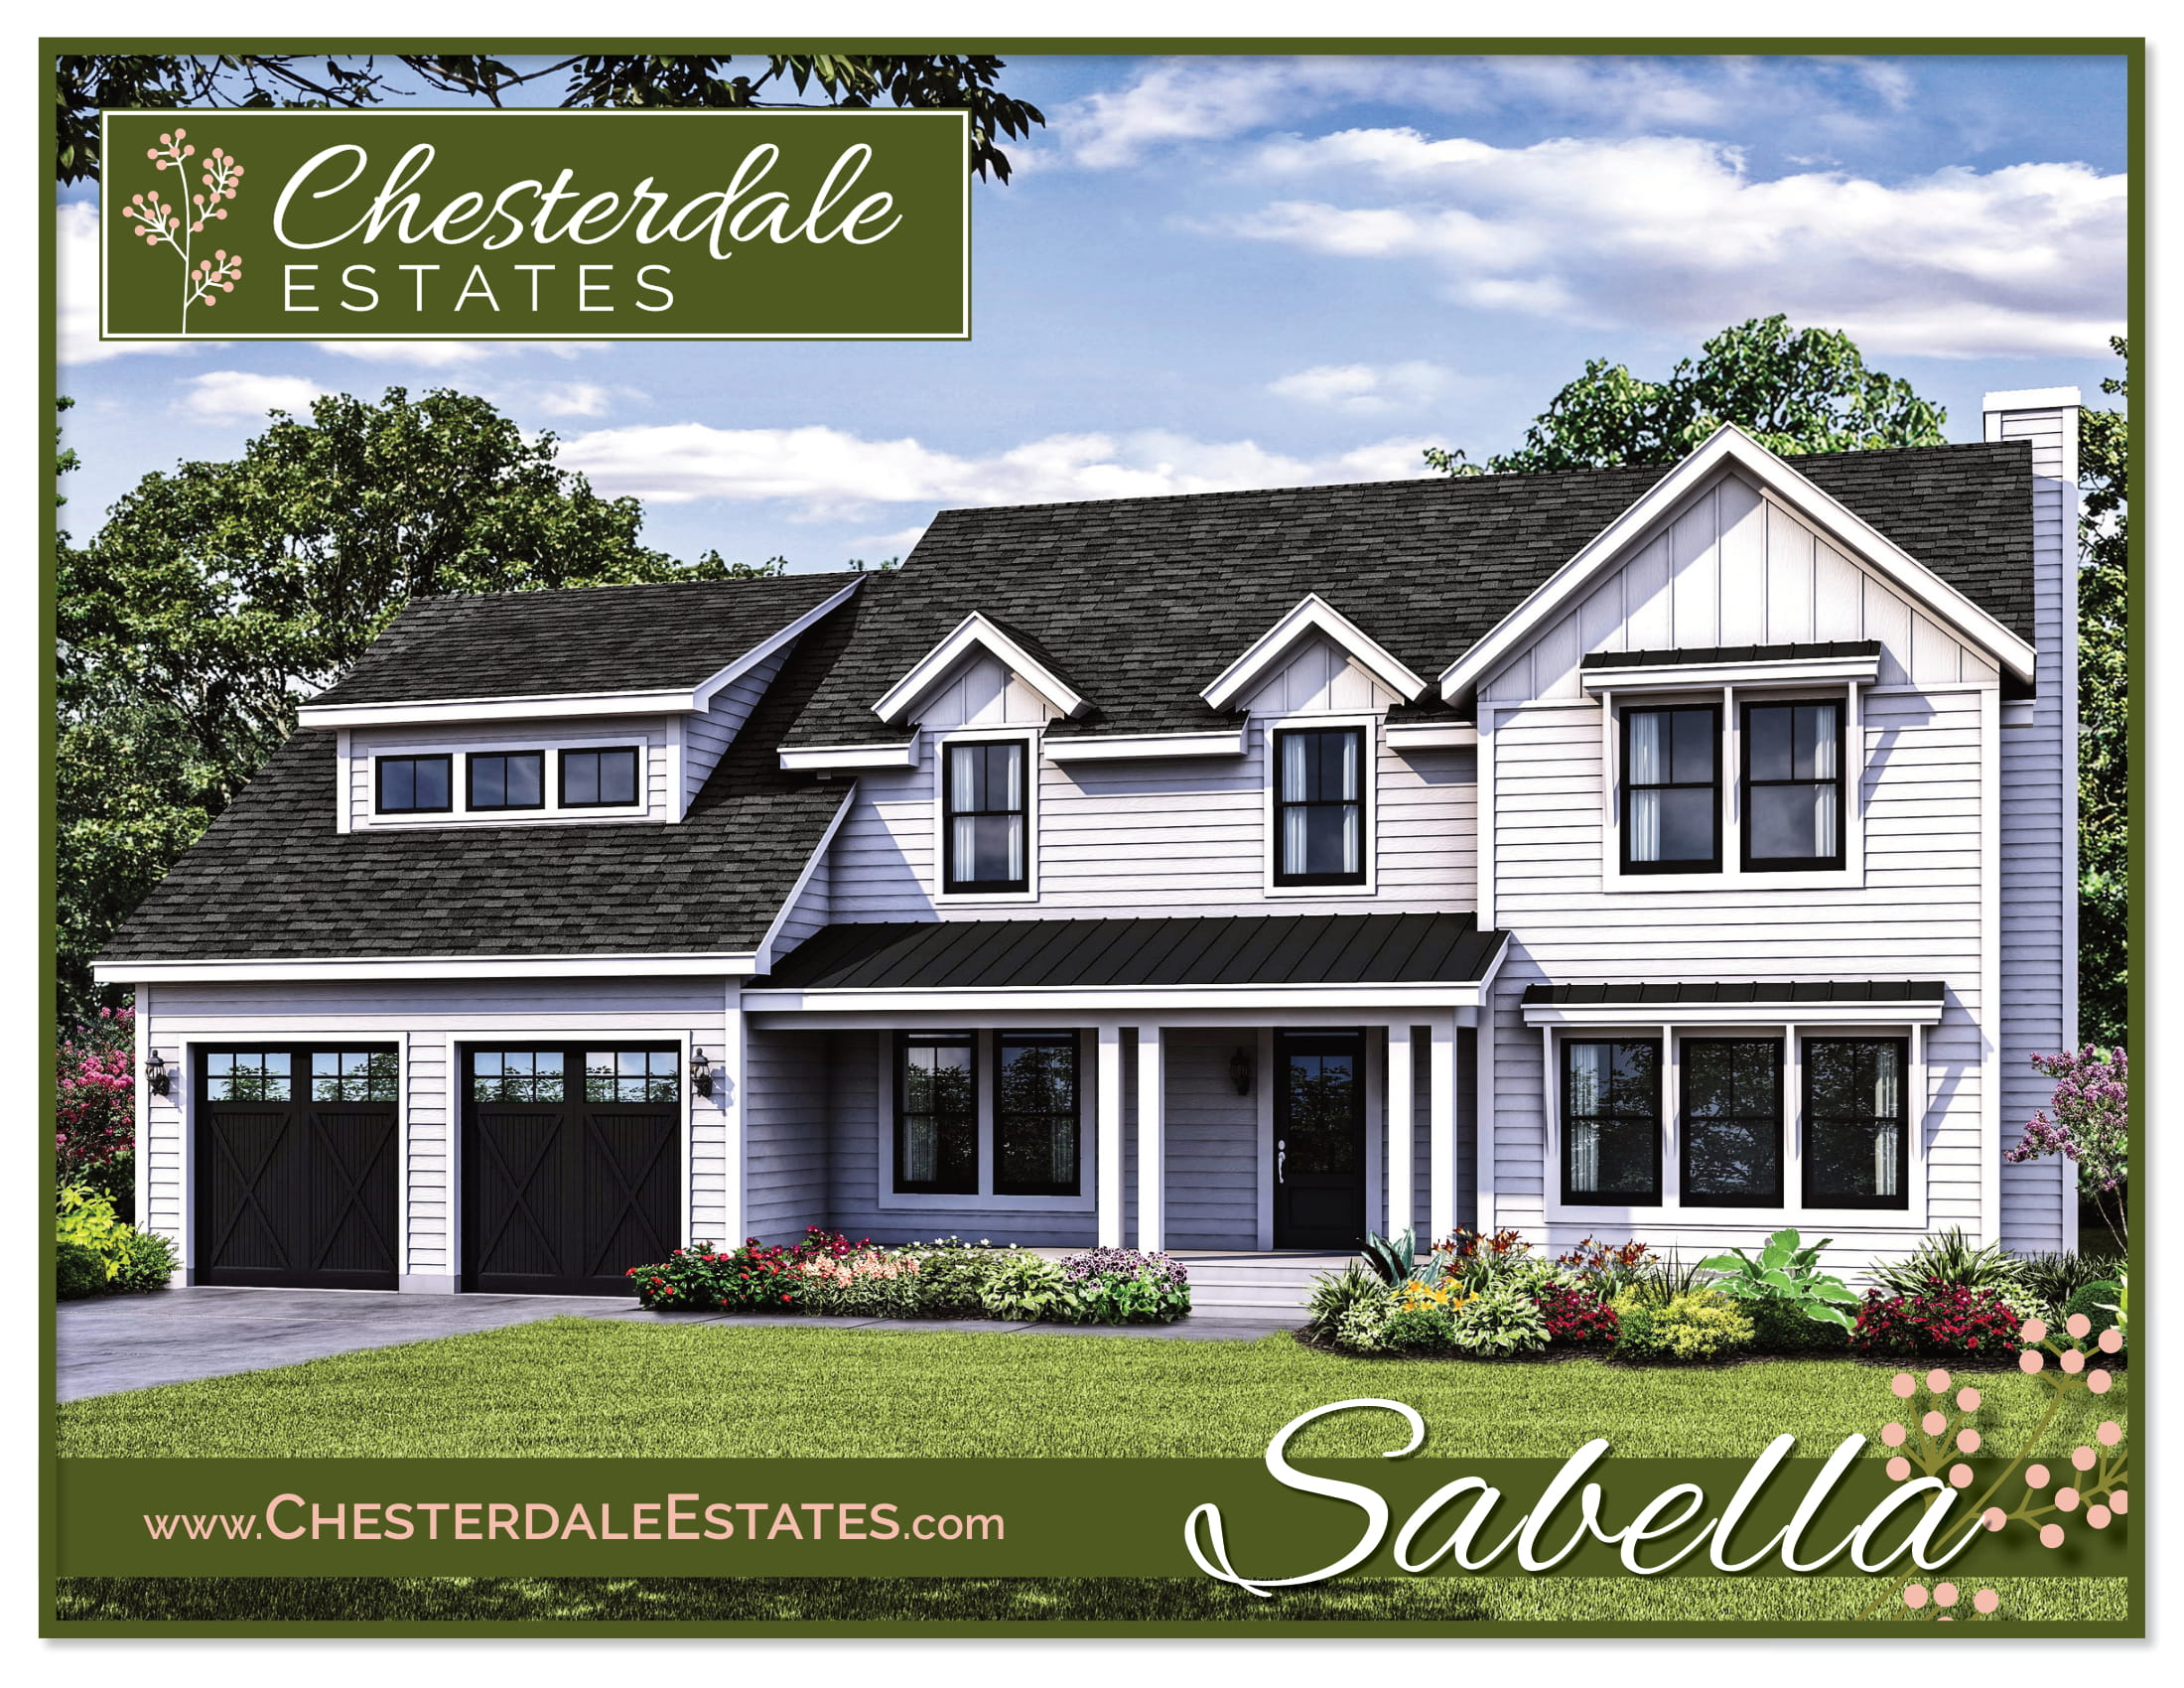 Christopher Ogden Middletown Ny Real Estate Thesabella Chesterdale 1